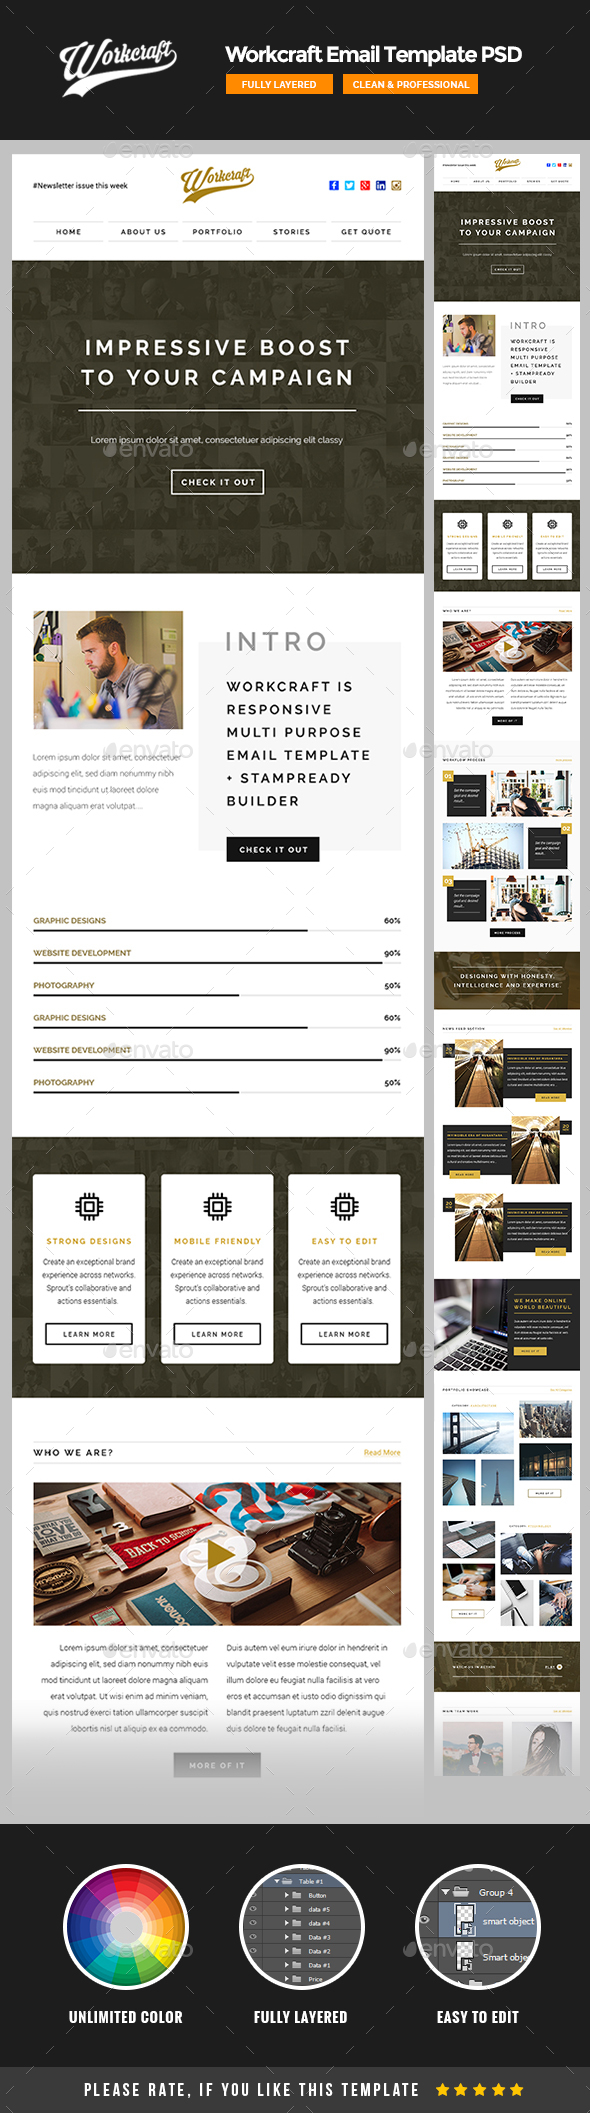 Workcraft – Email Template PSD | E-newsletters